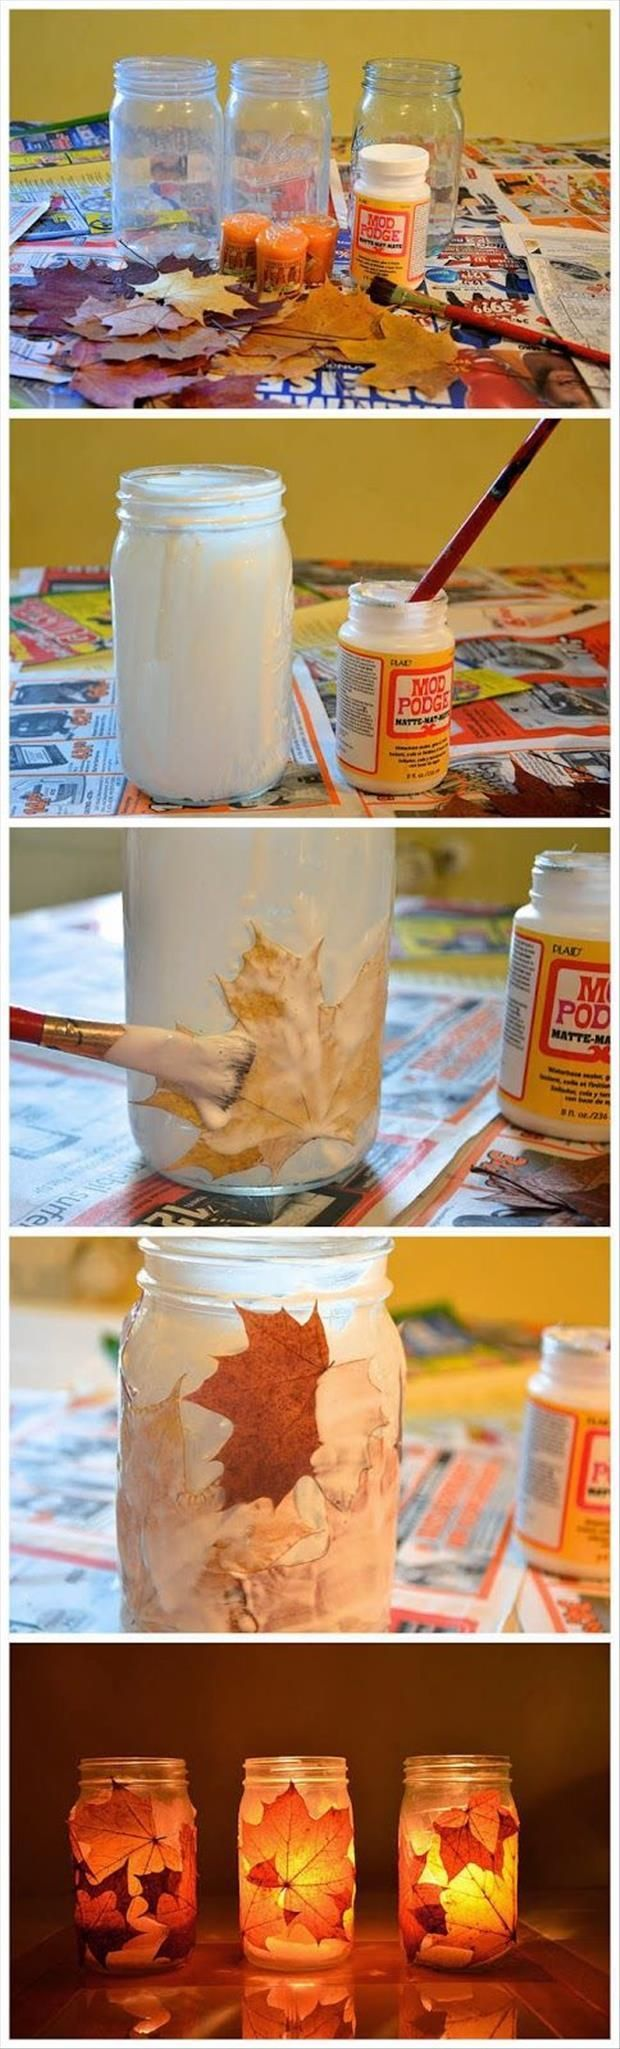 make your own fall candle jar #fall #jar #candle